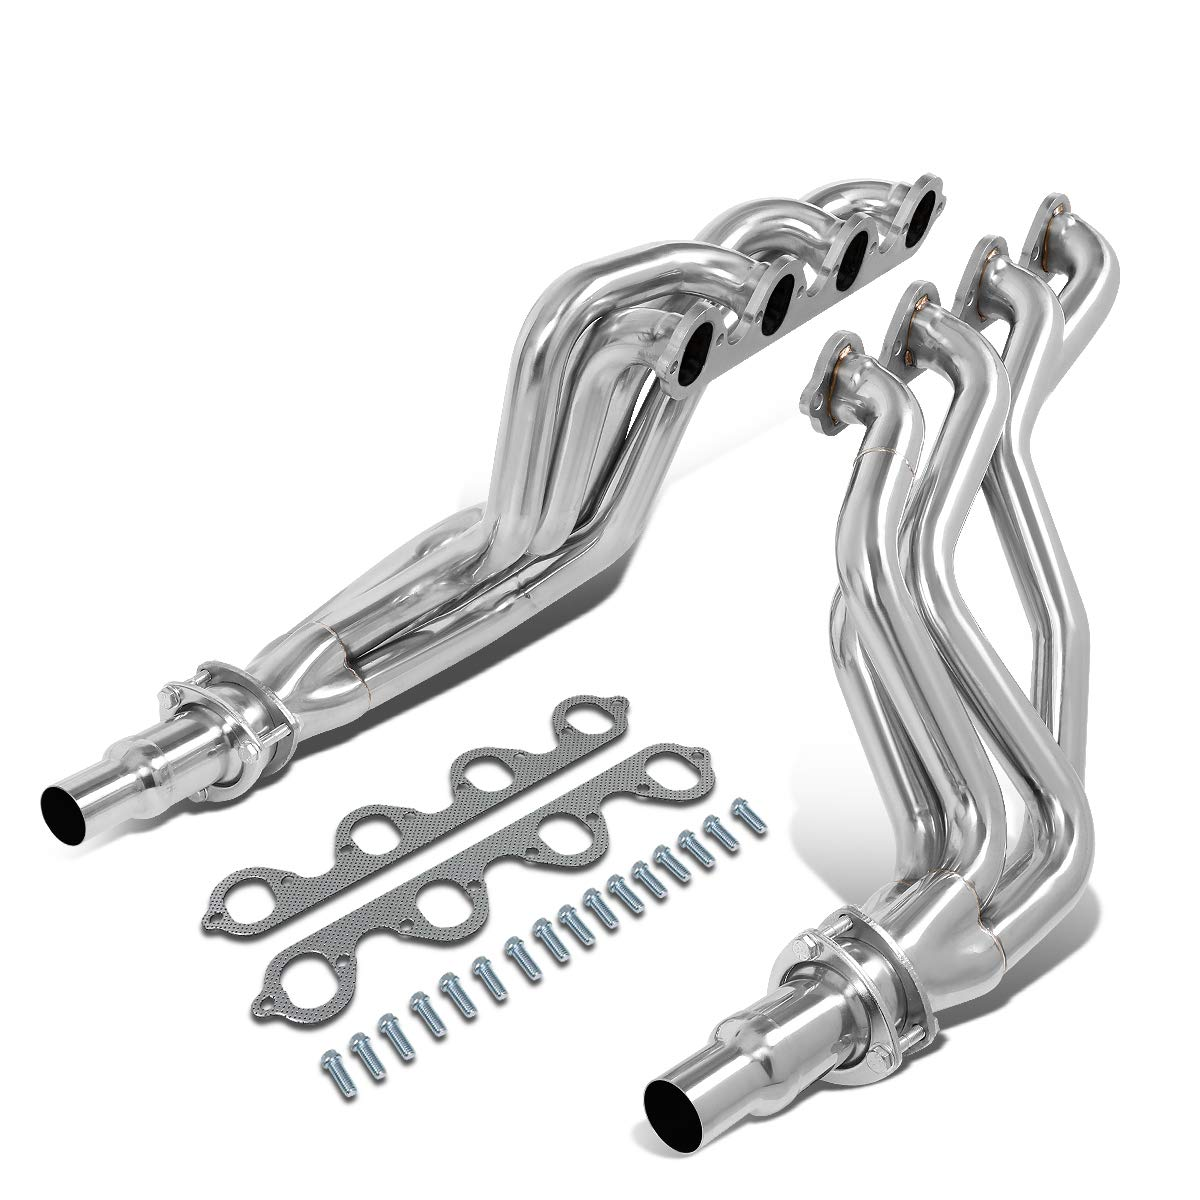 STAINLESS STEEL HEADER MANIFOLD EXHAUST FOR 99-04 F150 4WD//RWD 5.4 MODULAR V8